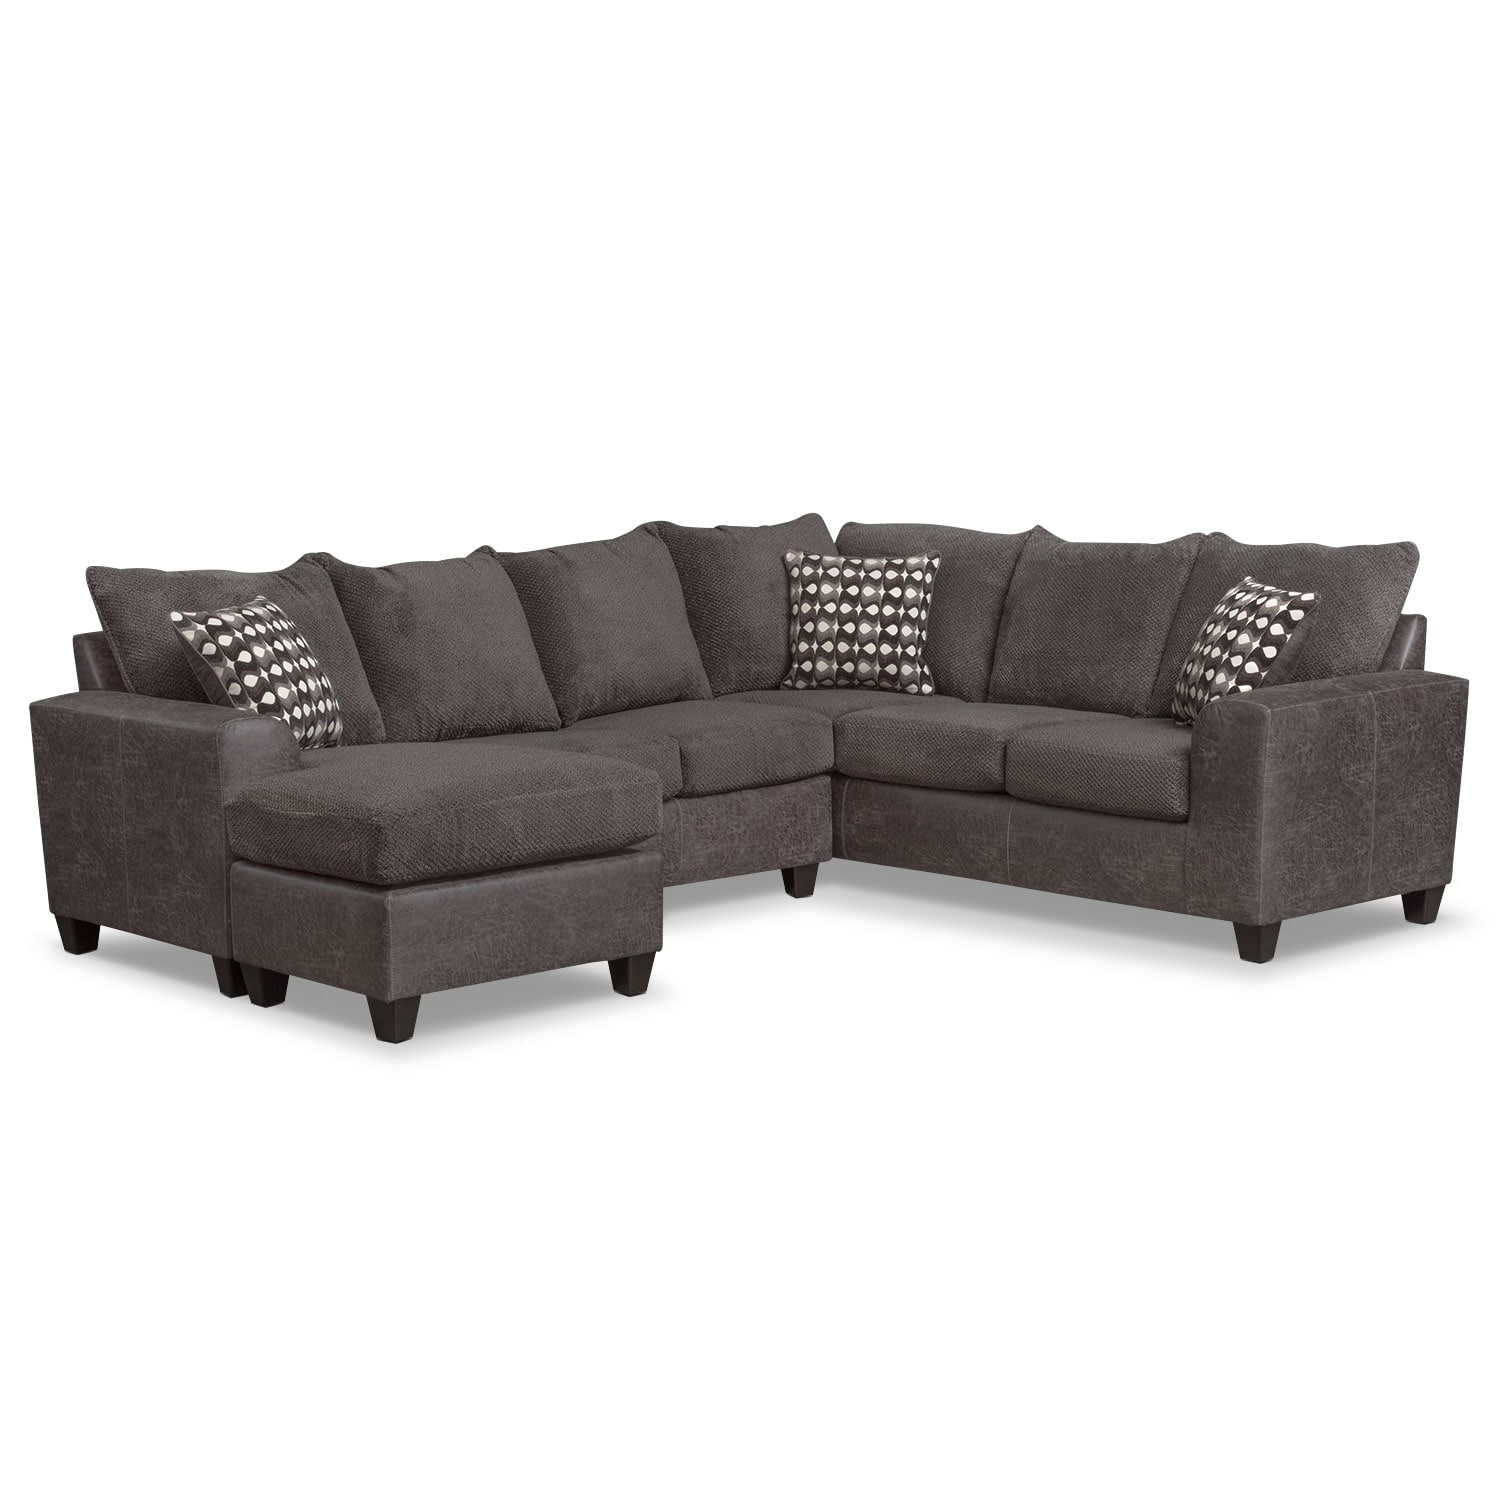 Brando 3 piece sectional with modular chaise smoke for 3pc sectional with chaise